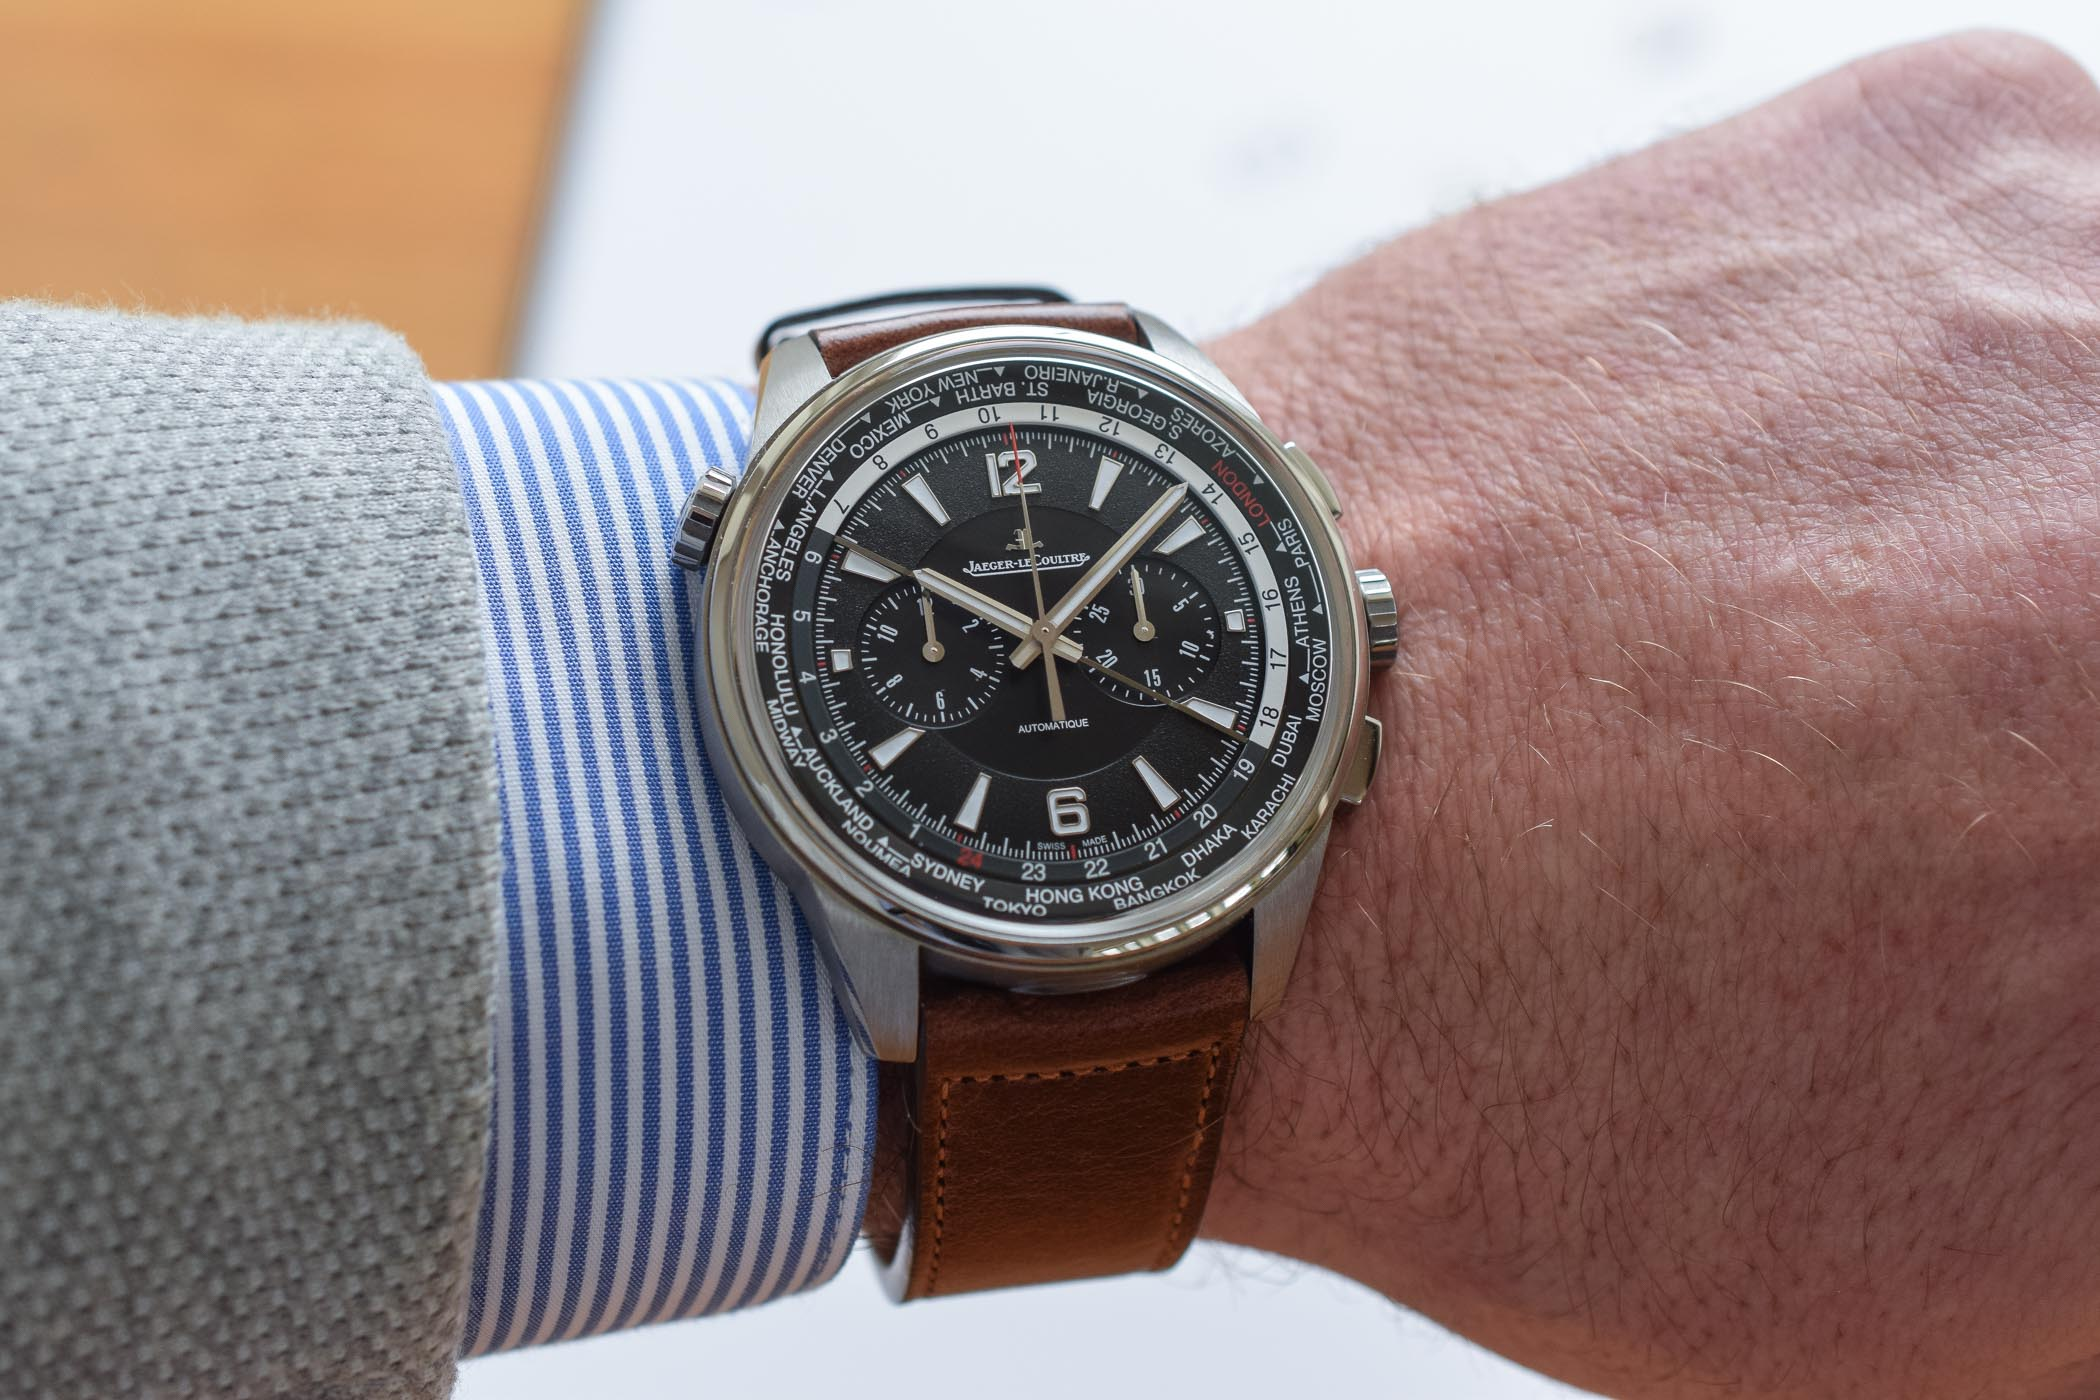 Jaeger-LeCoultre Polaris Chronograph WorldTimer - Review - 6